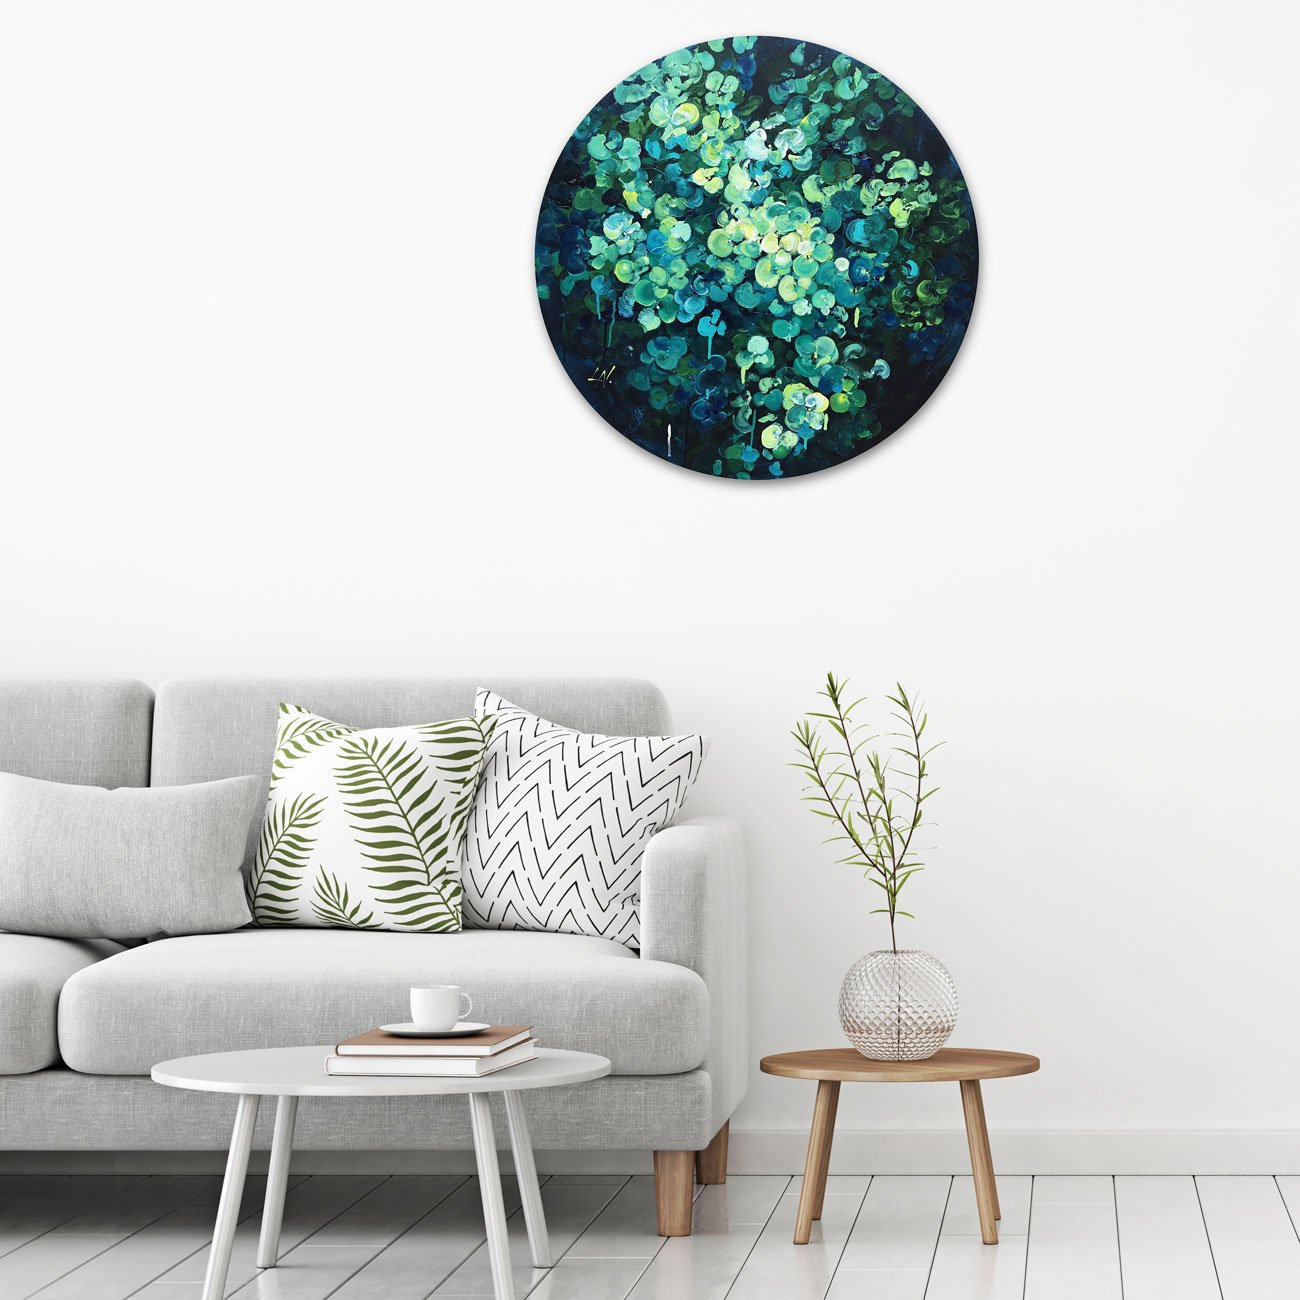 Circular artwork in situ